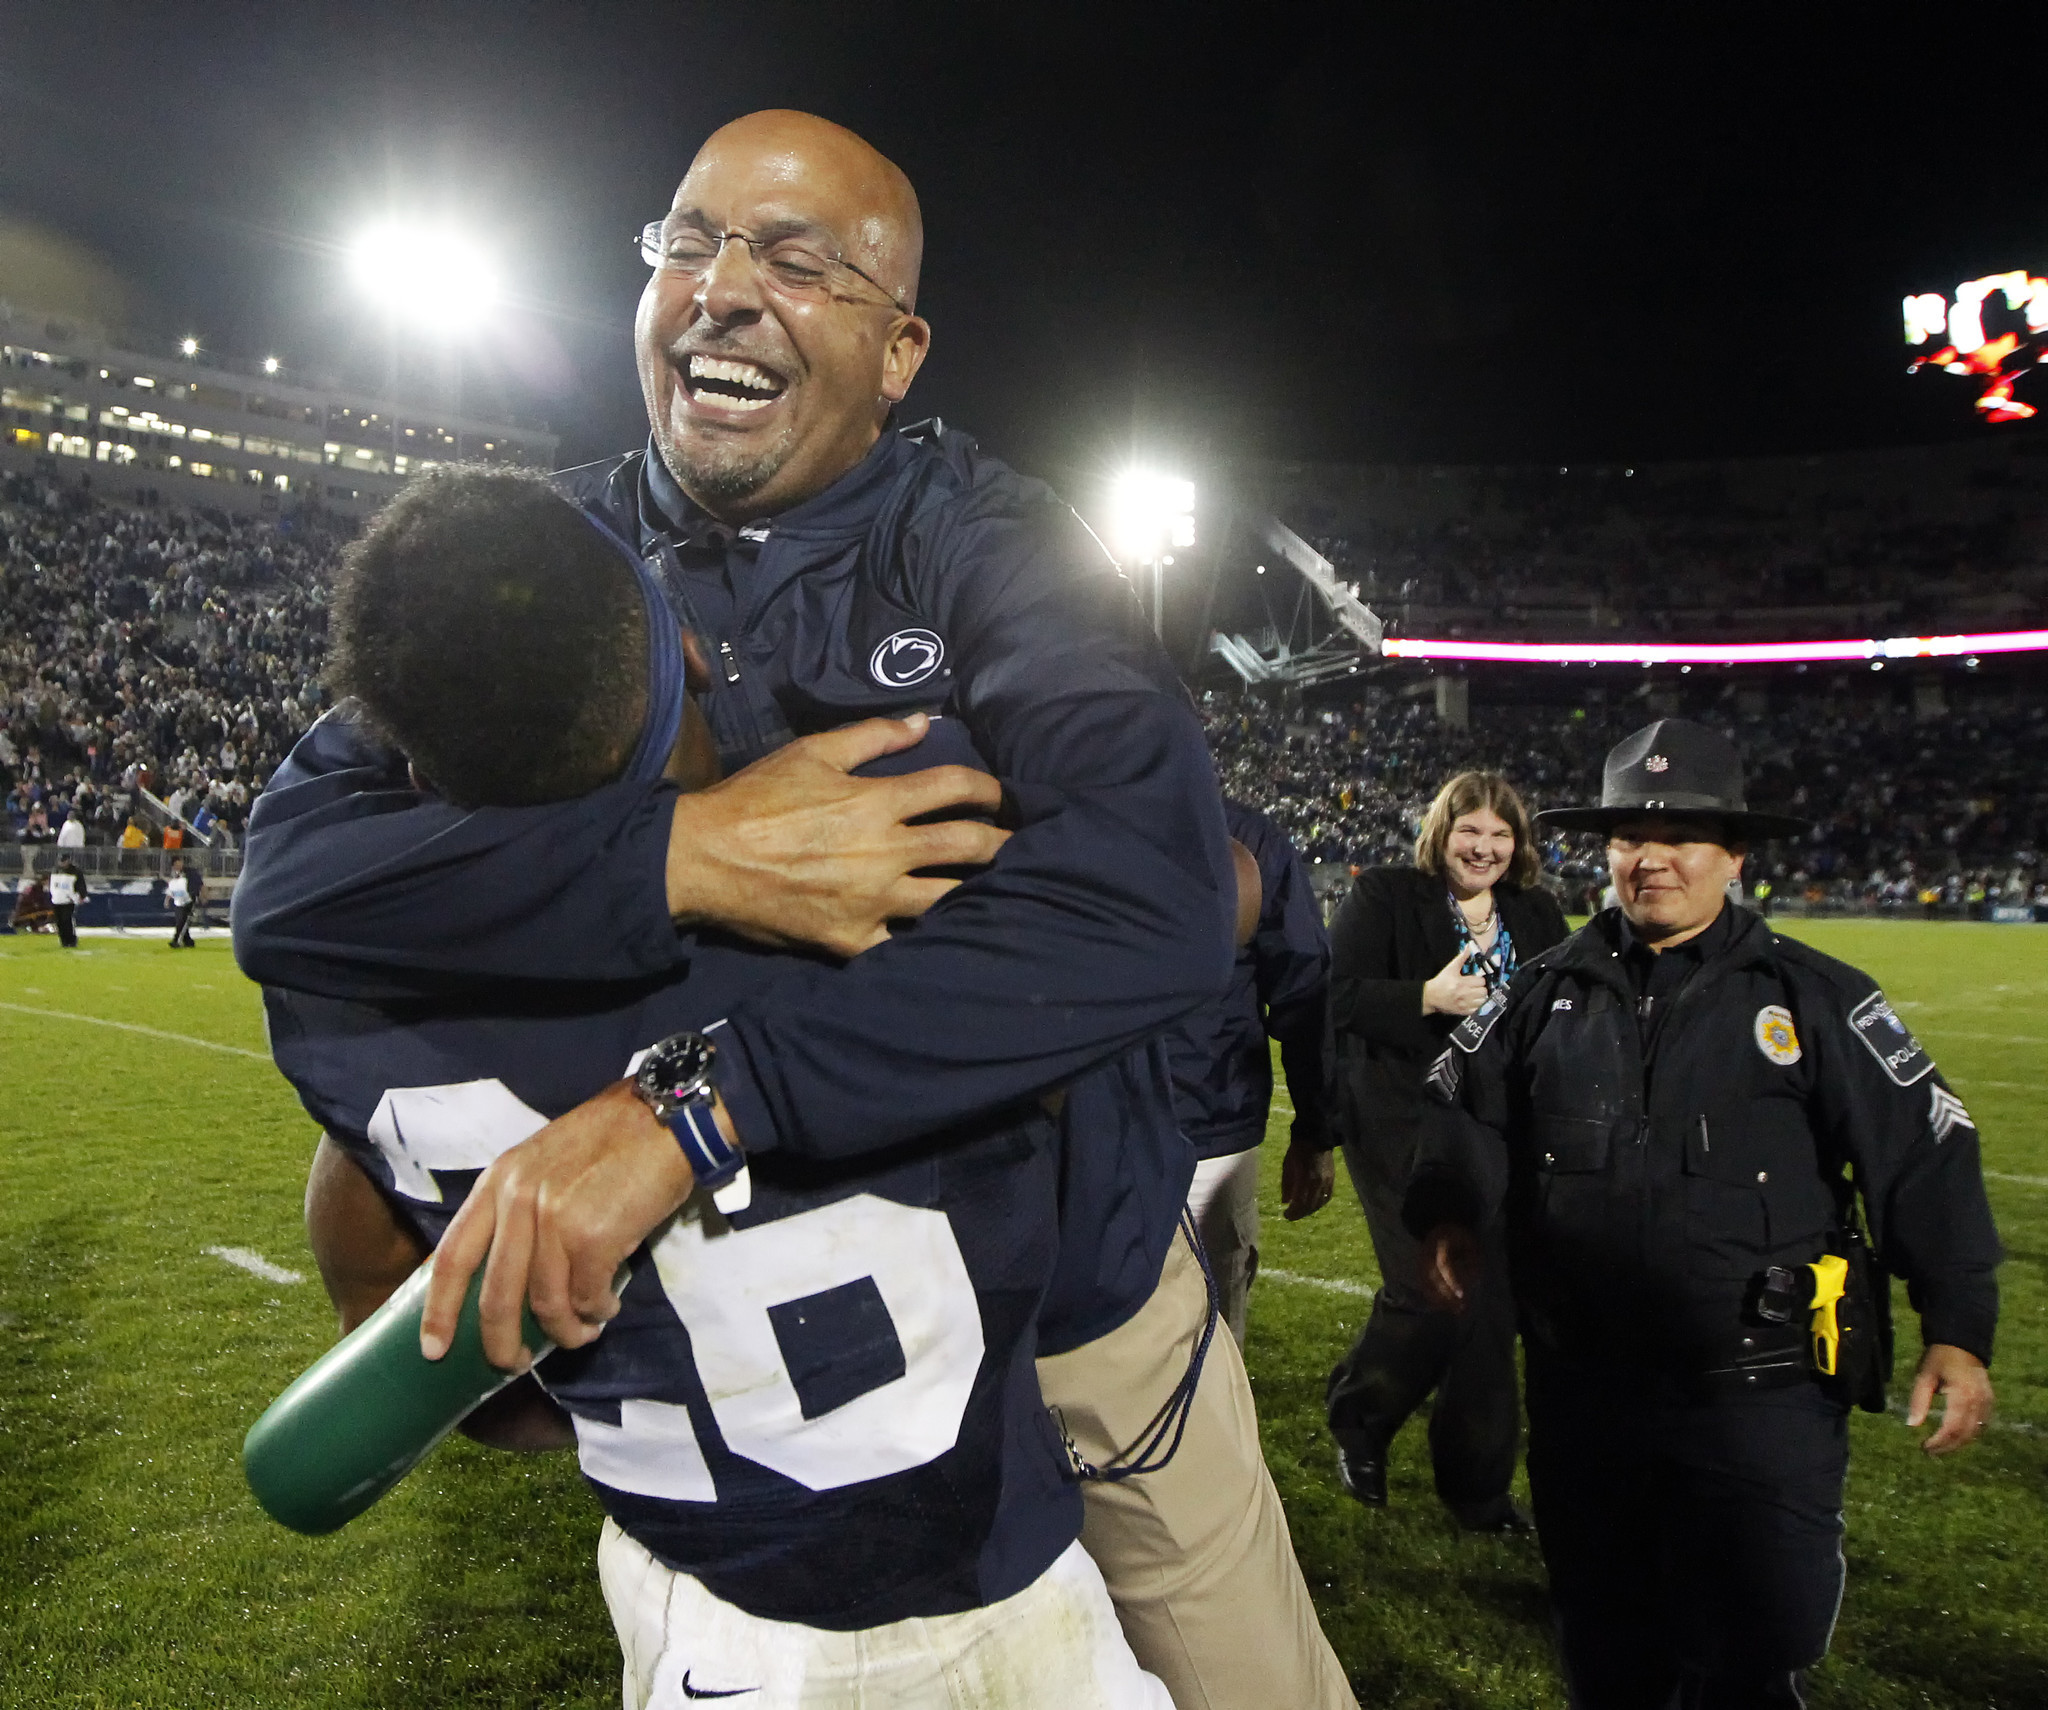 Mc-saquon-barkley-a-perfect-example-of-what-we-re-doing-james-franklin-tells-penn-state-trustees-20170224